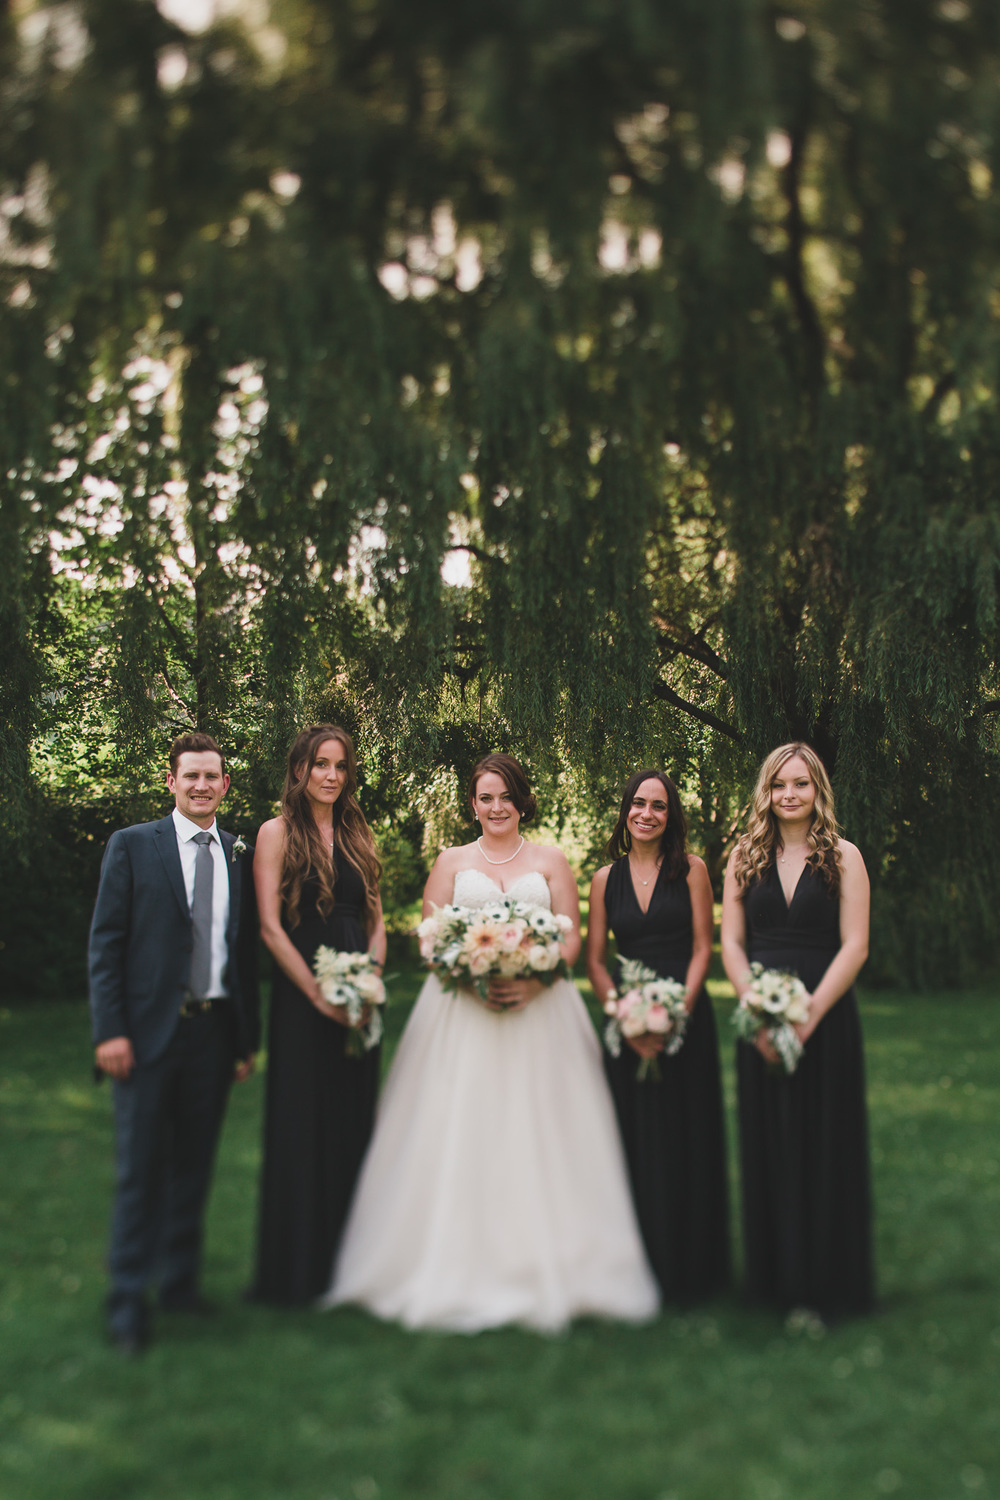 Tilt Shift Bridal Party Photos